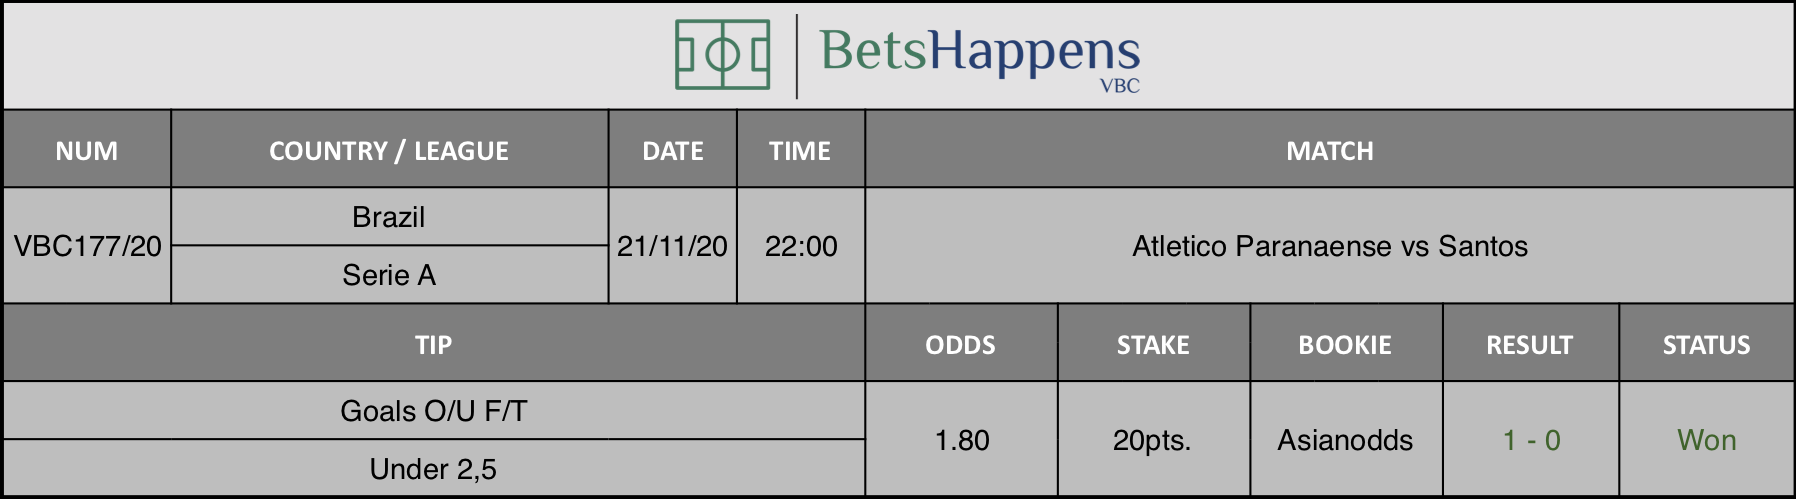 Results of our tip for the Atletico Paranaense vs Santos match where Goals O/U F/T Under 2,5 is recommended.